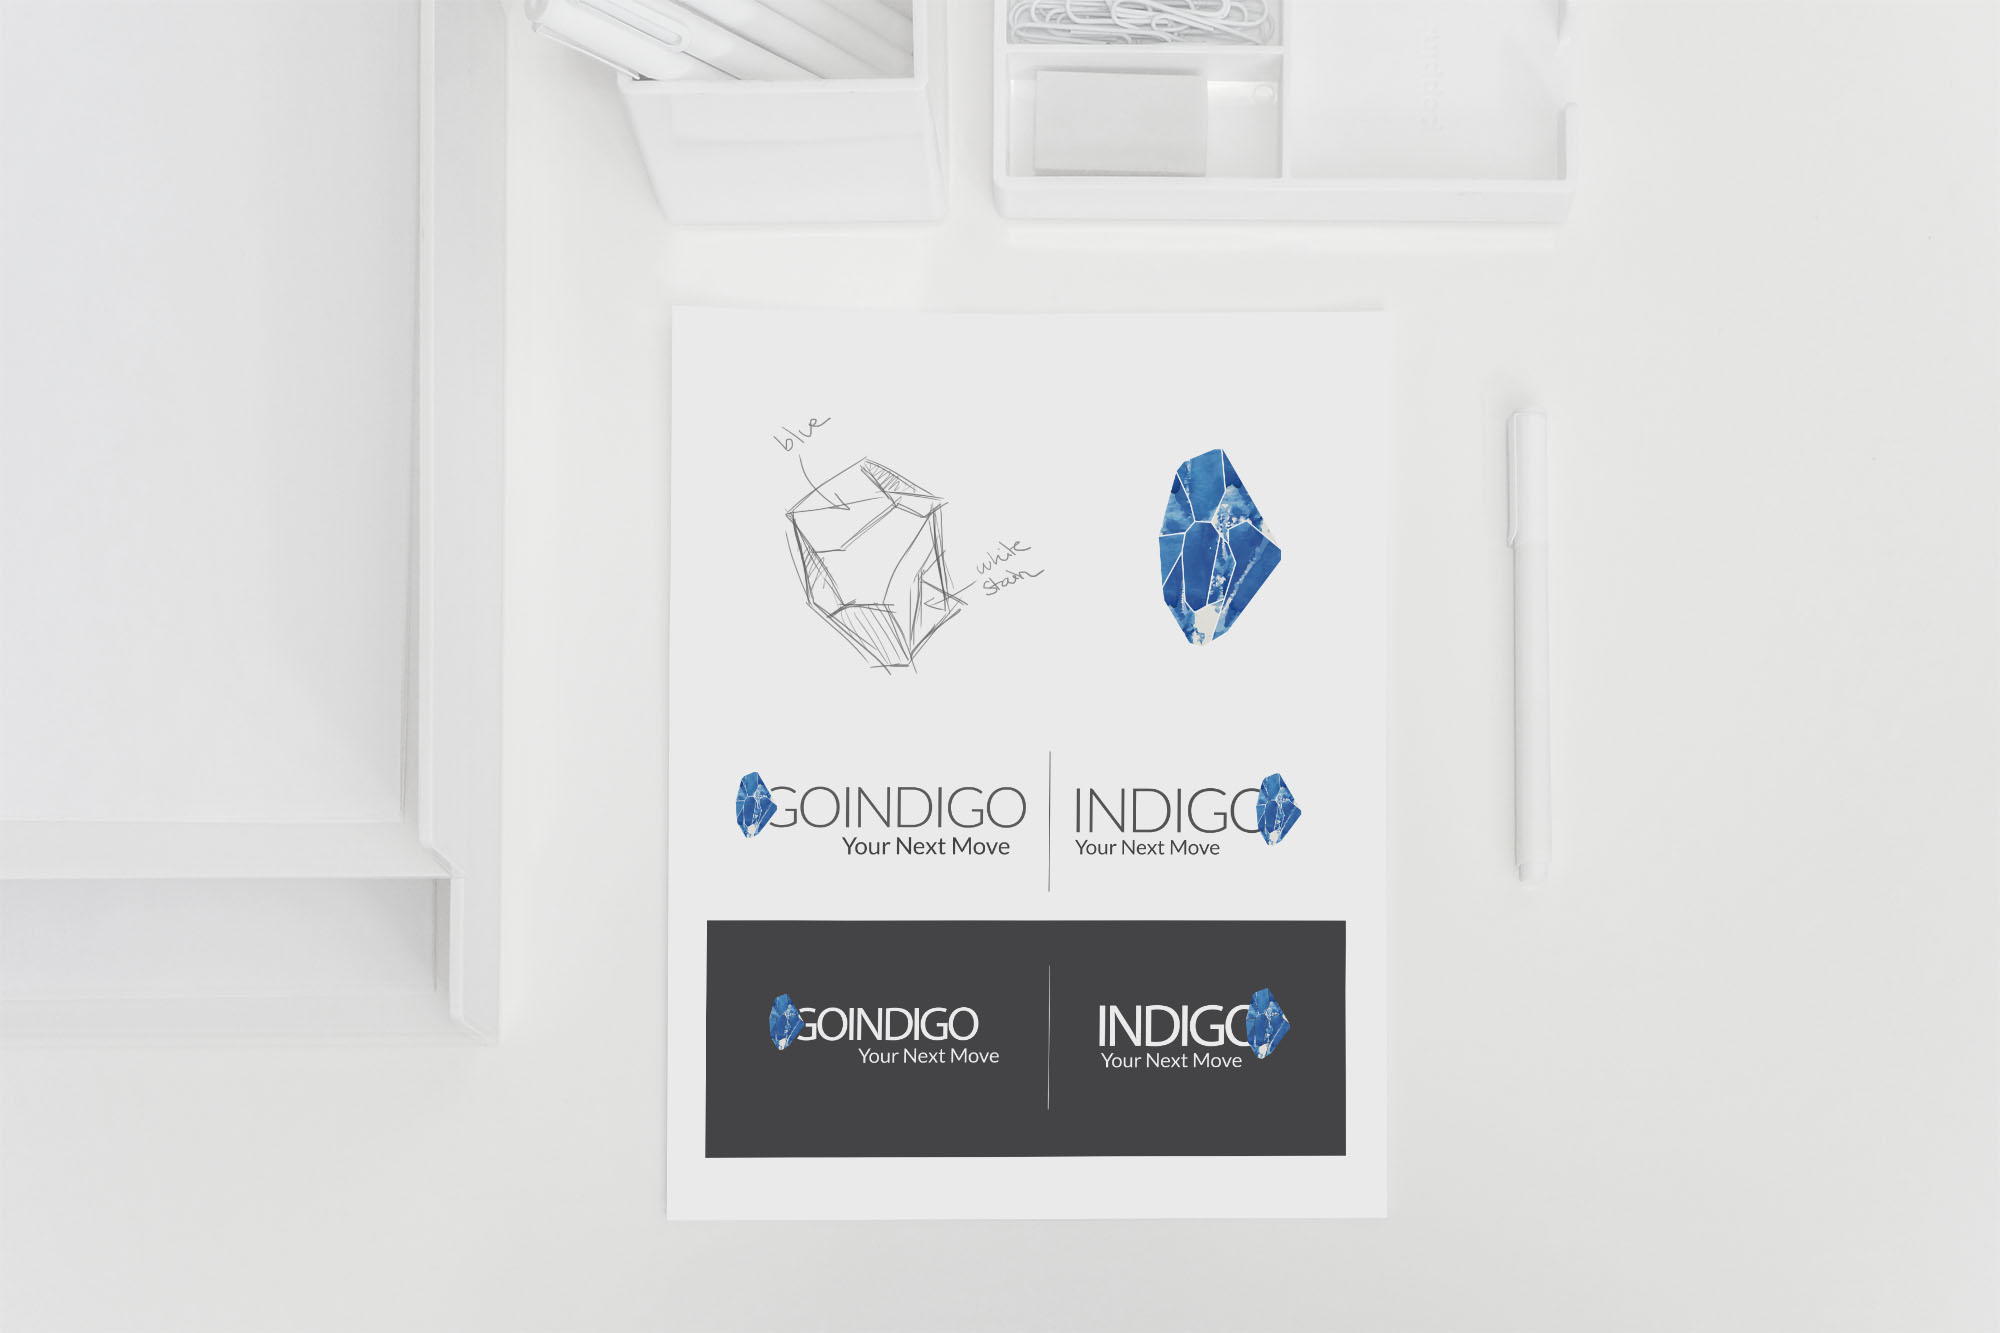 Indigo_workboard